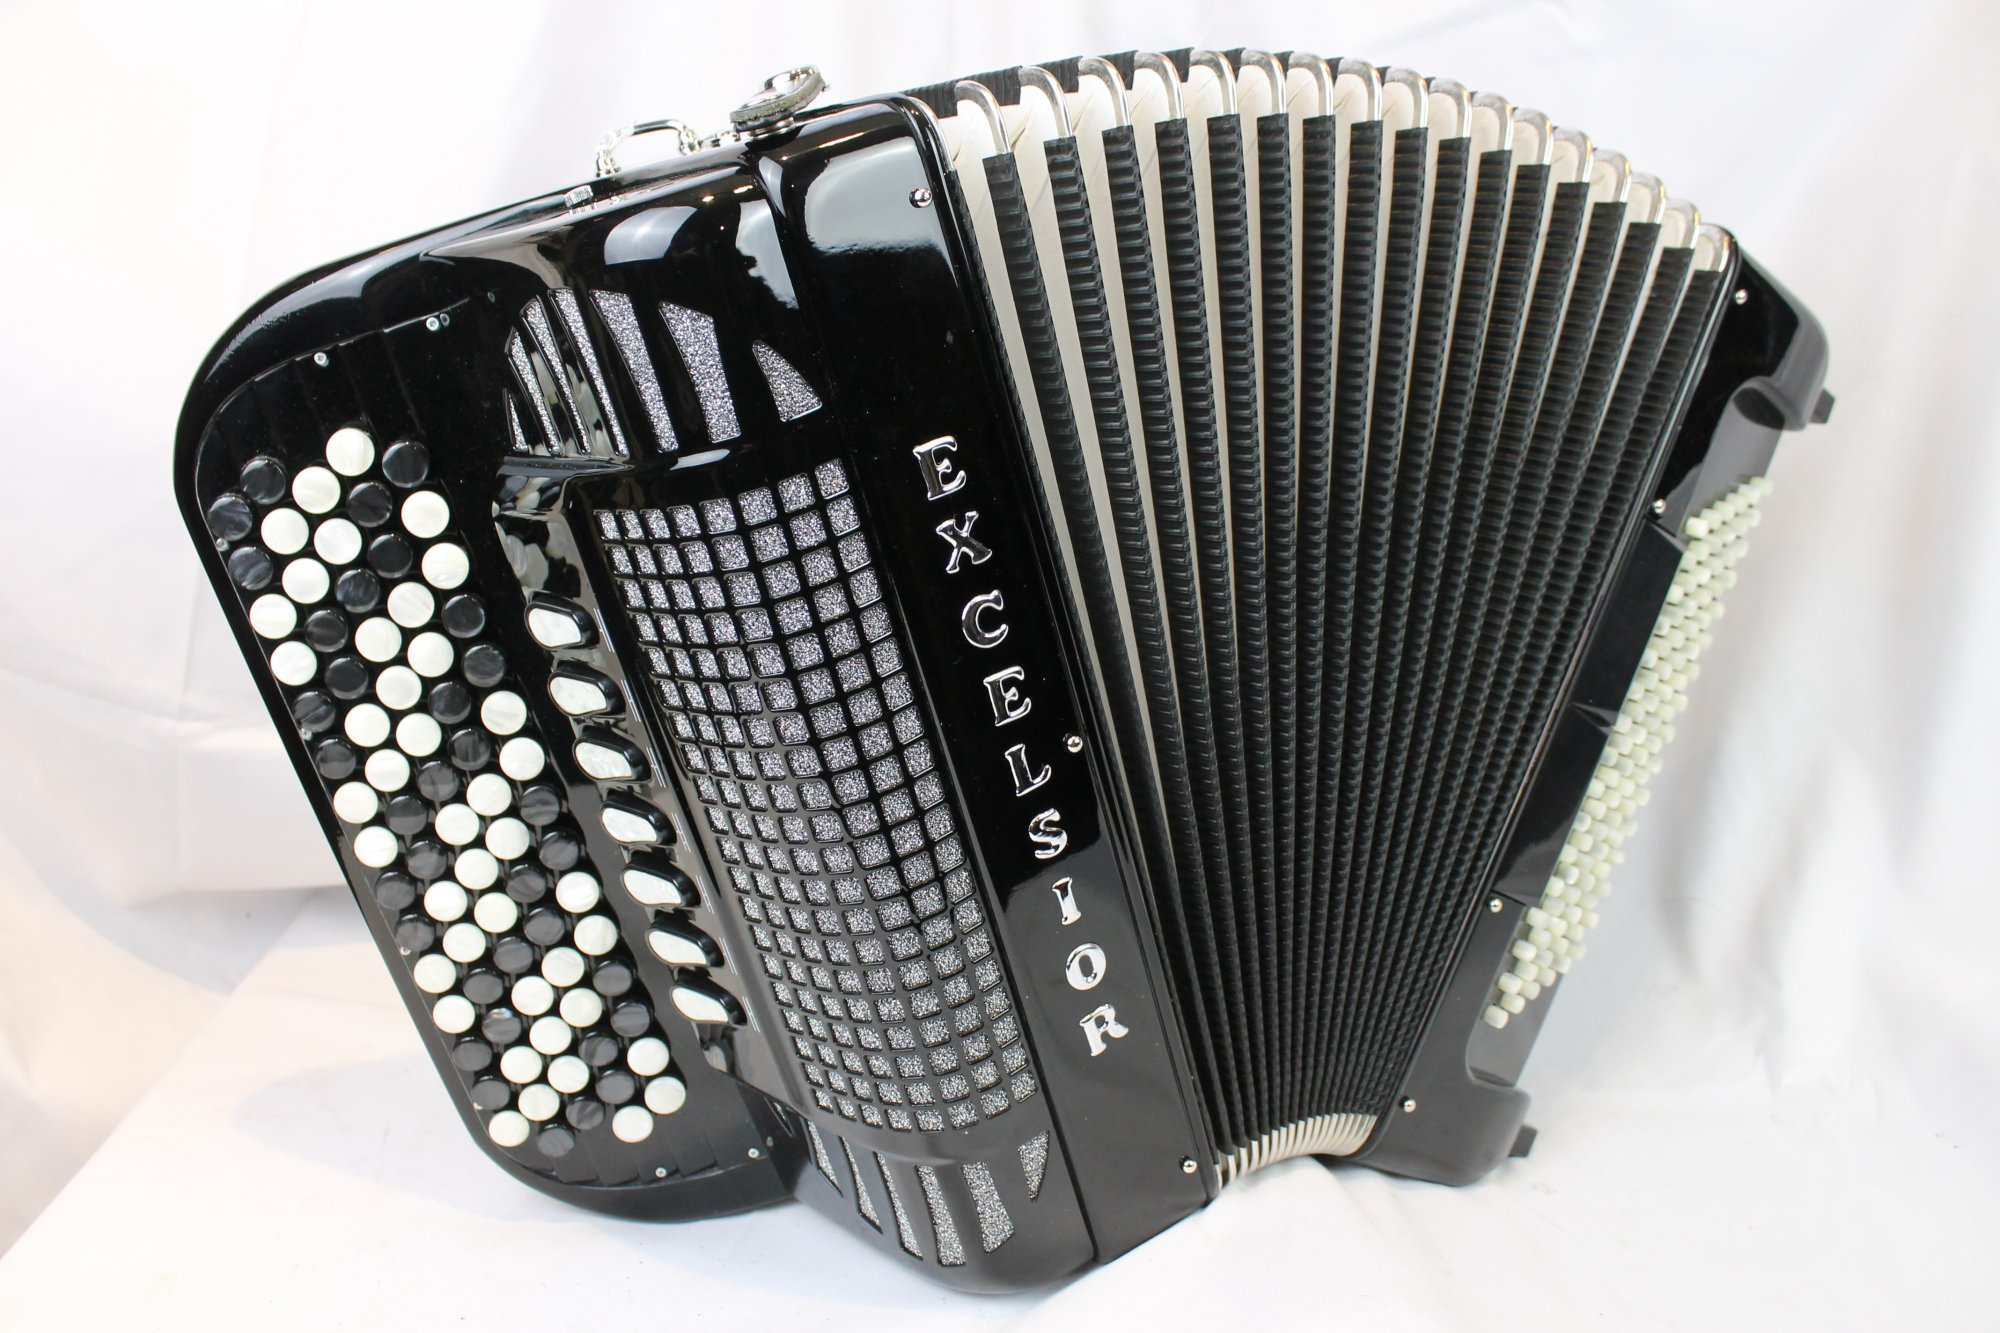 NEW Black Excelsior 696 Chromatic Button Accordion C LMM 77 96